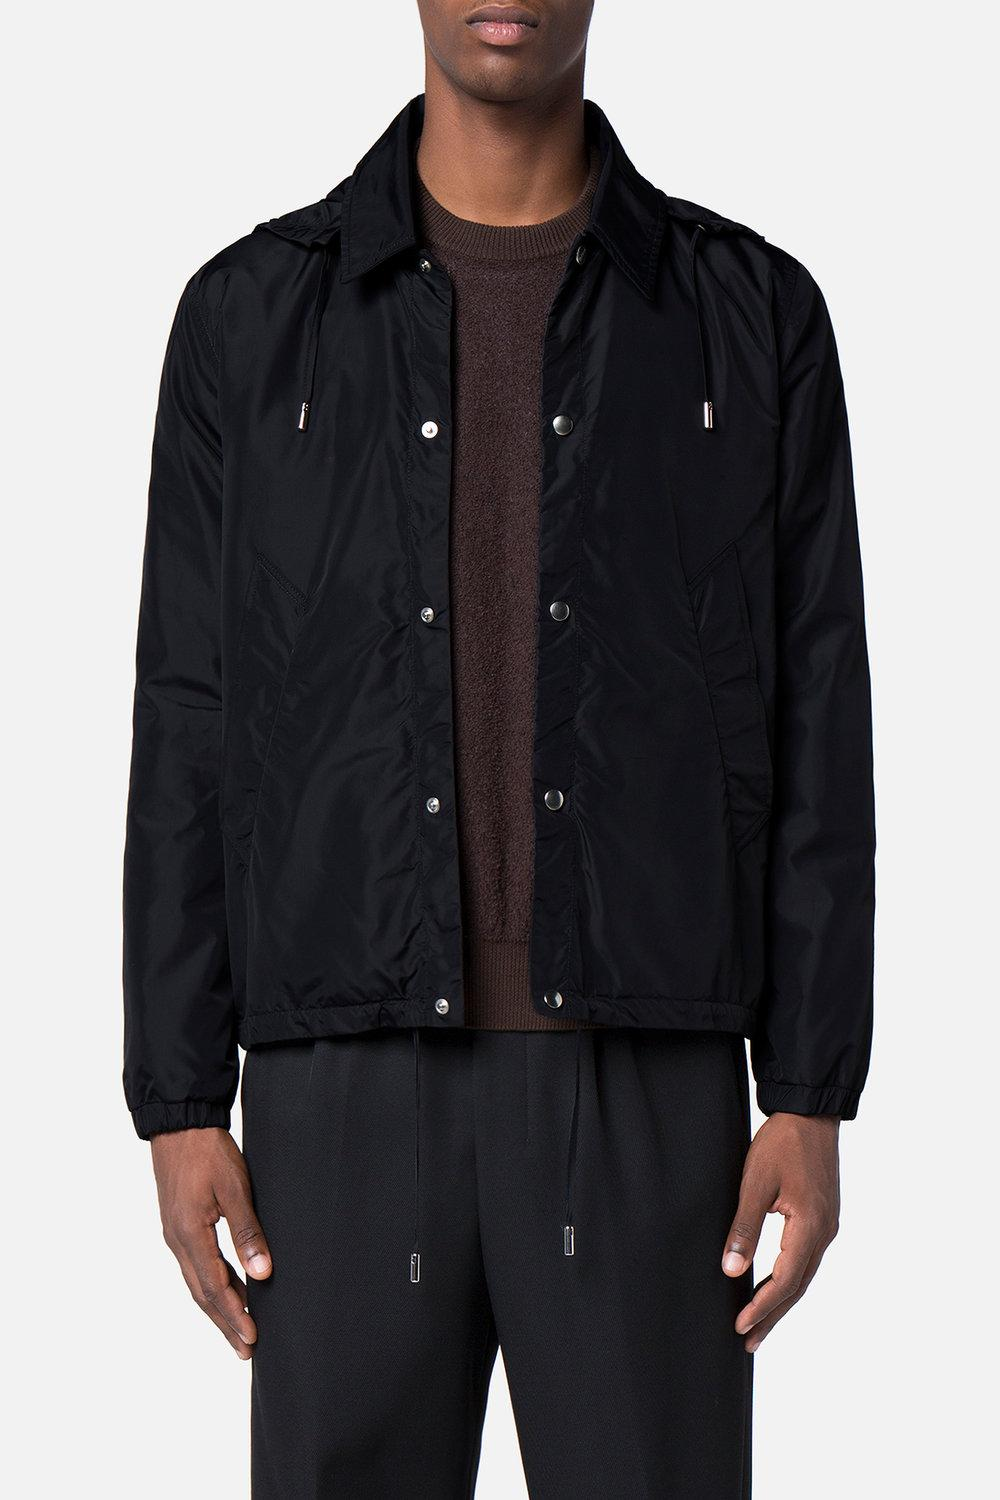 AMI Synthetic Hooded Jacket in Black for Men